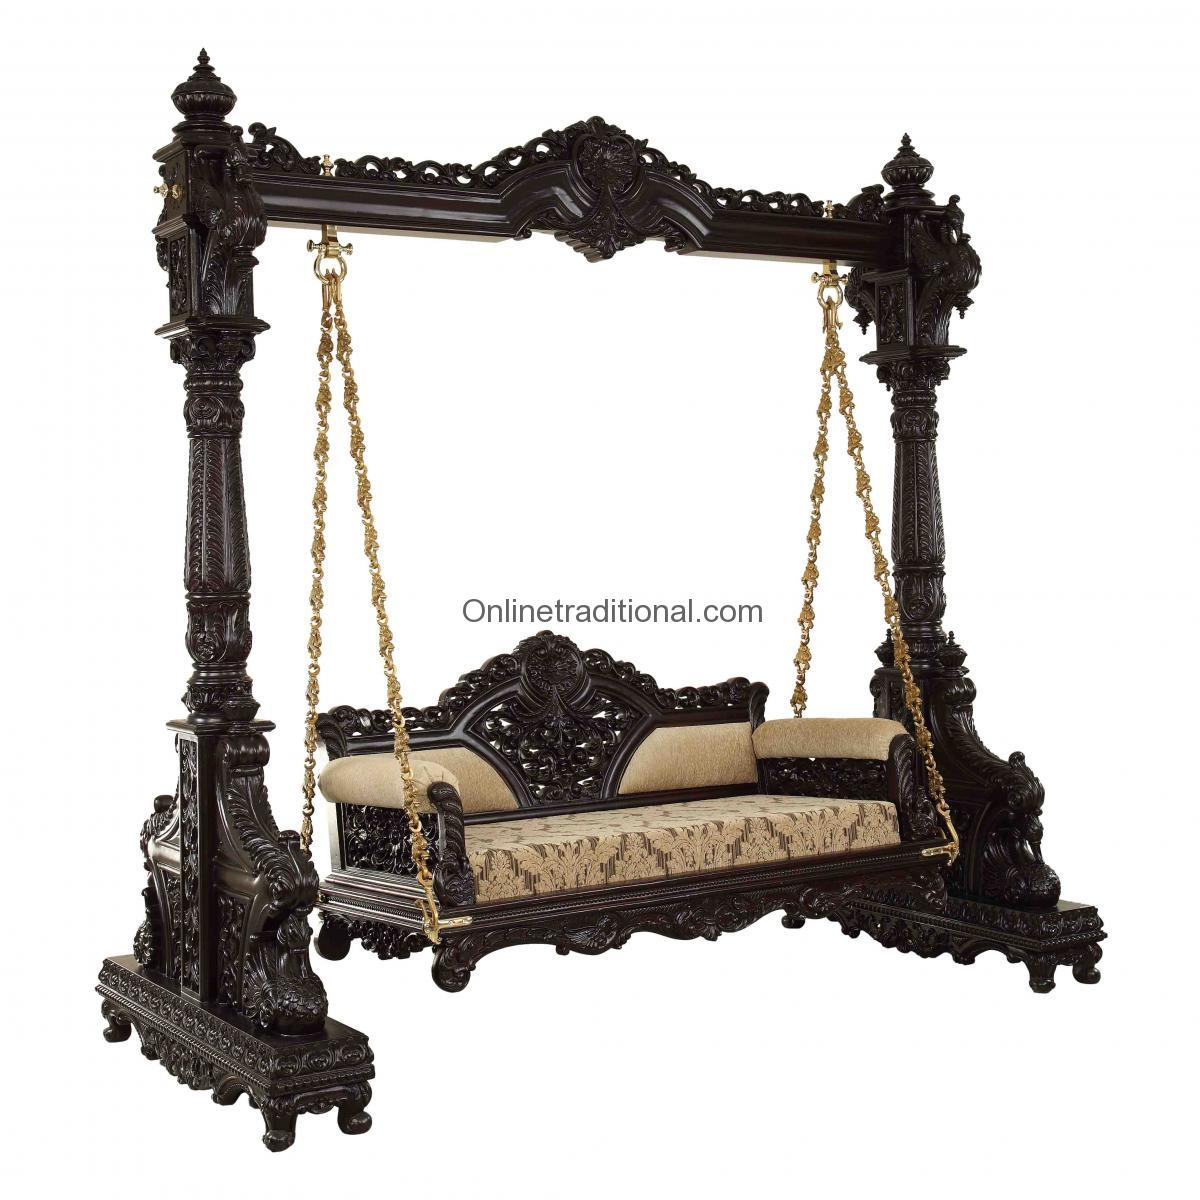 Wooden Furniture for Home, Wooden Doors, Beds, Swing and Temple in India